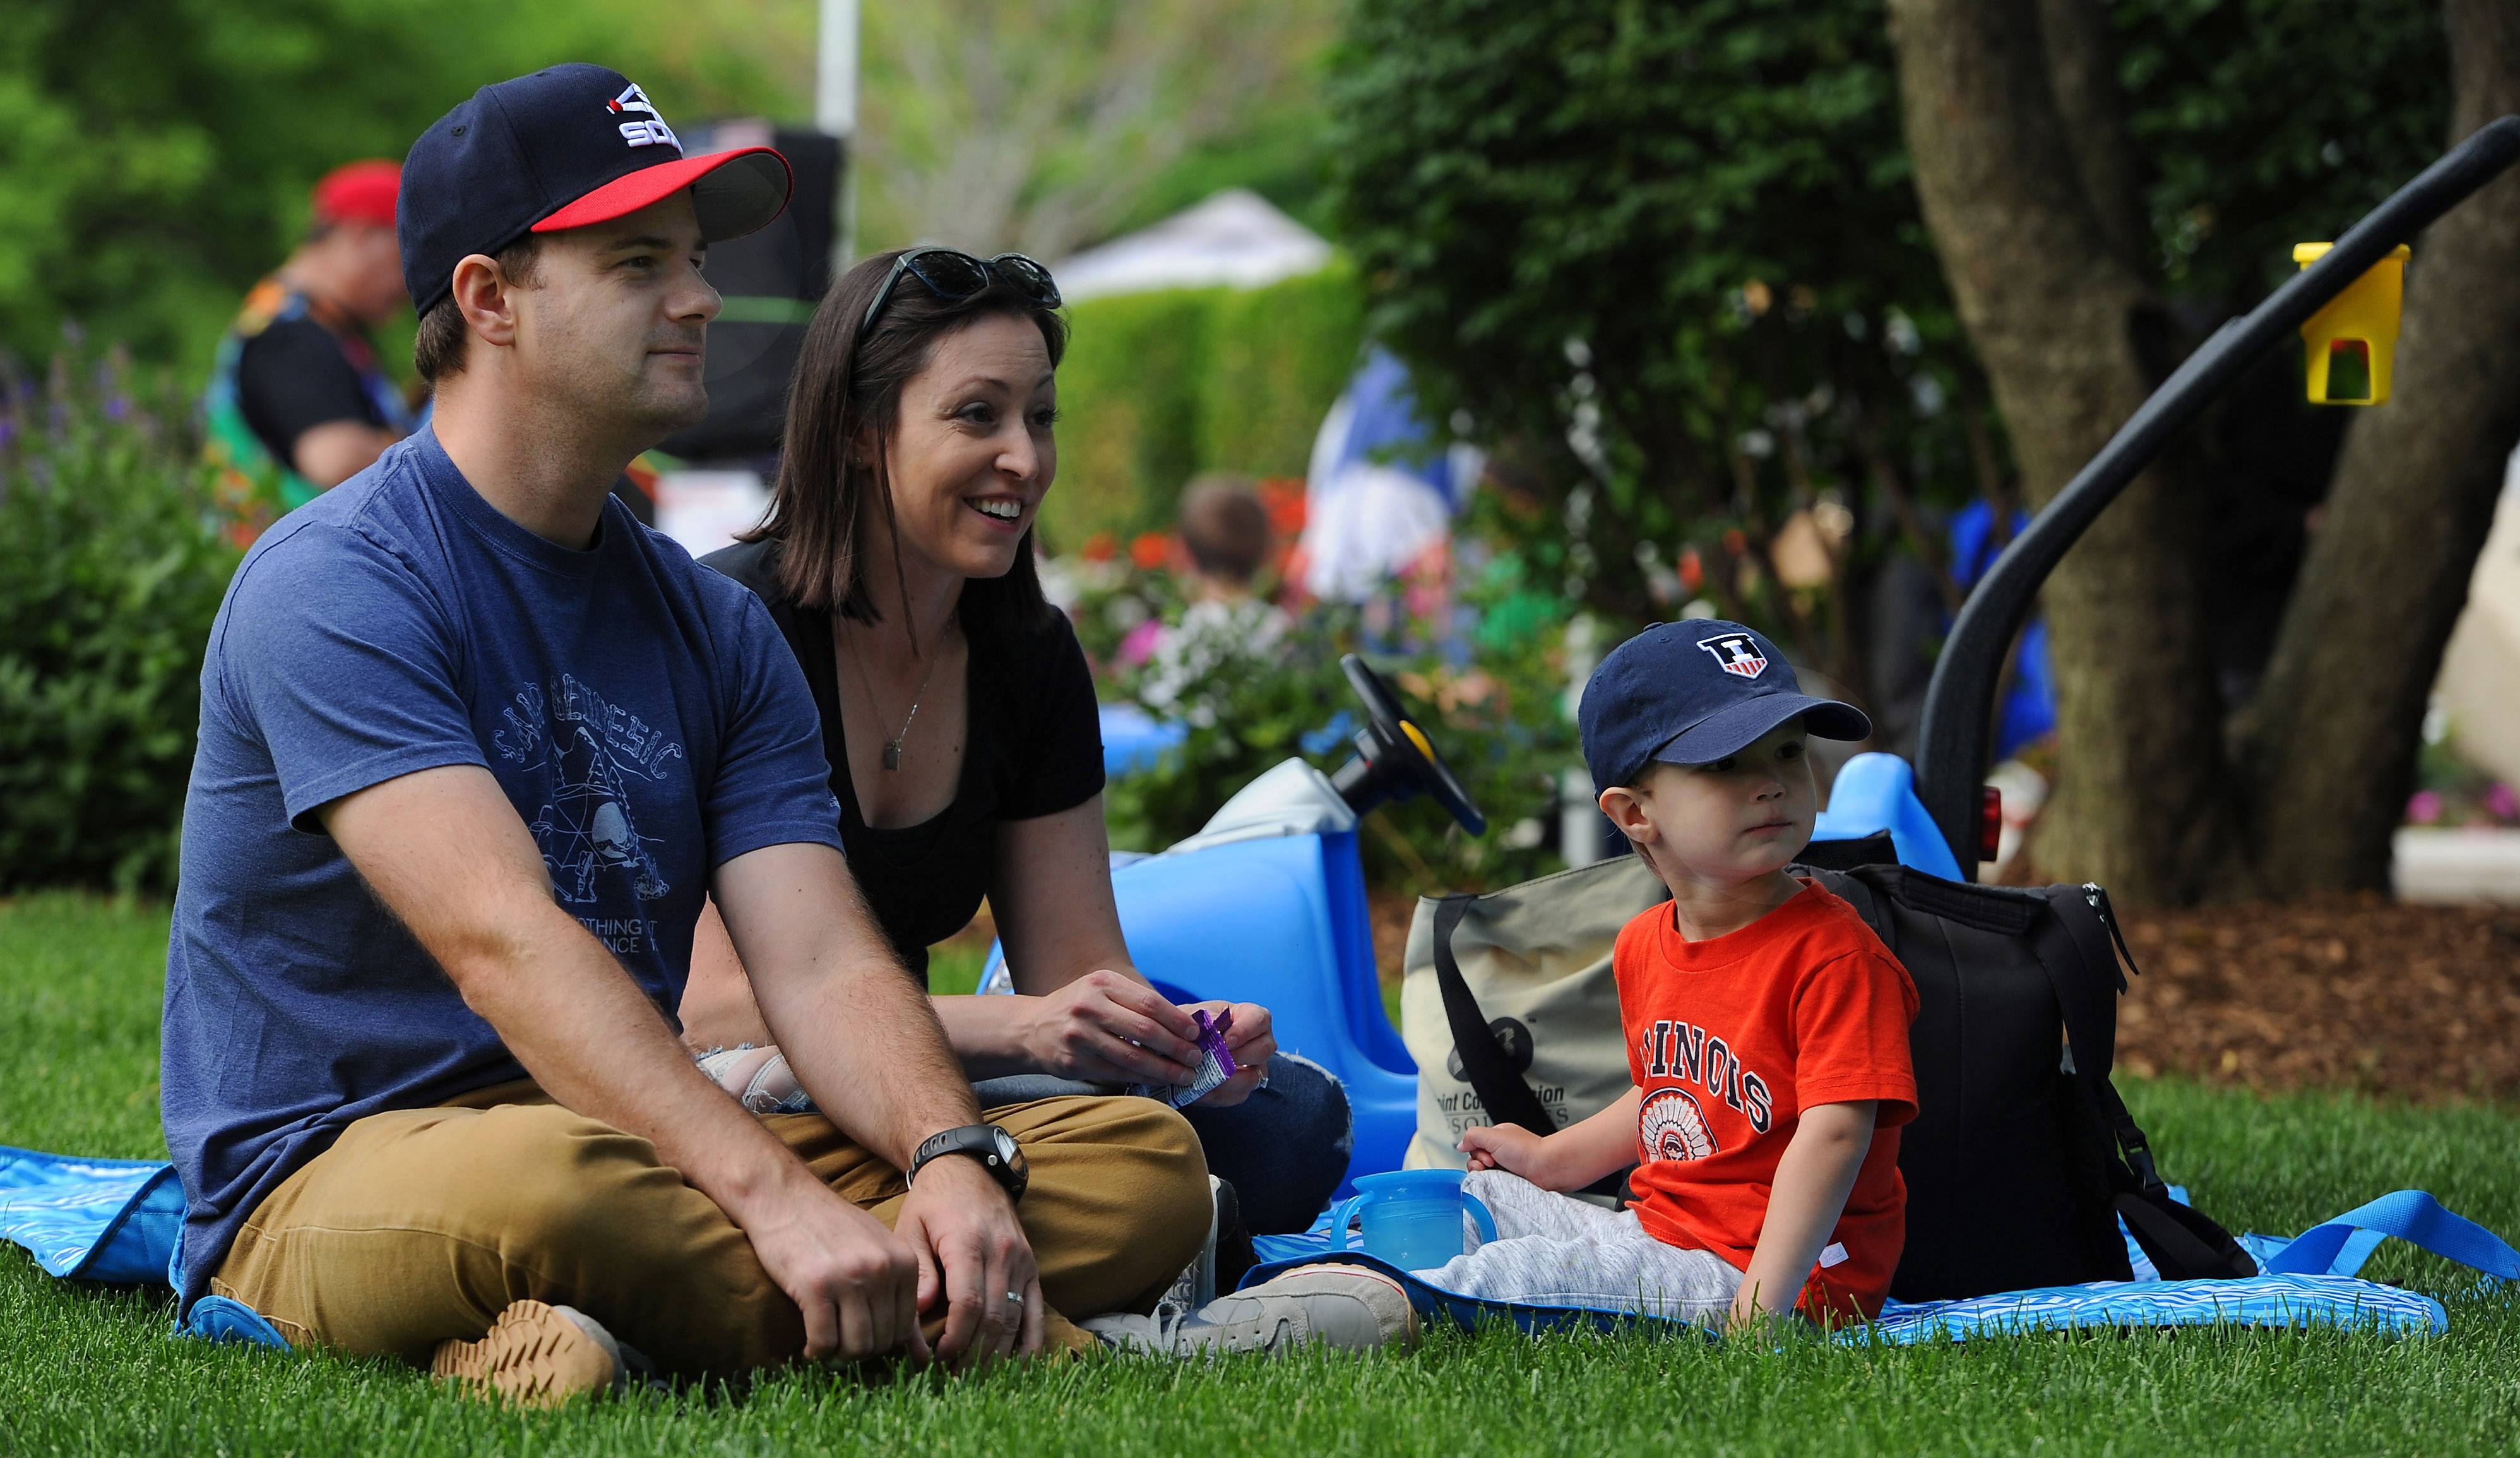 Michael Schlaak and his wife Jackie entertain their son Truman, 2, during Picnic in the Park Friday at North School Park in Arlington Heights.